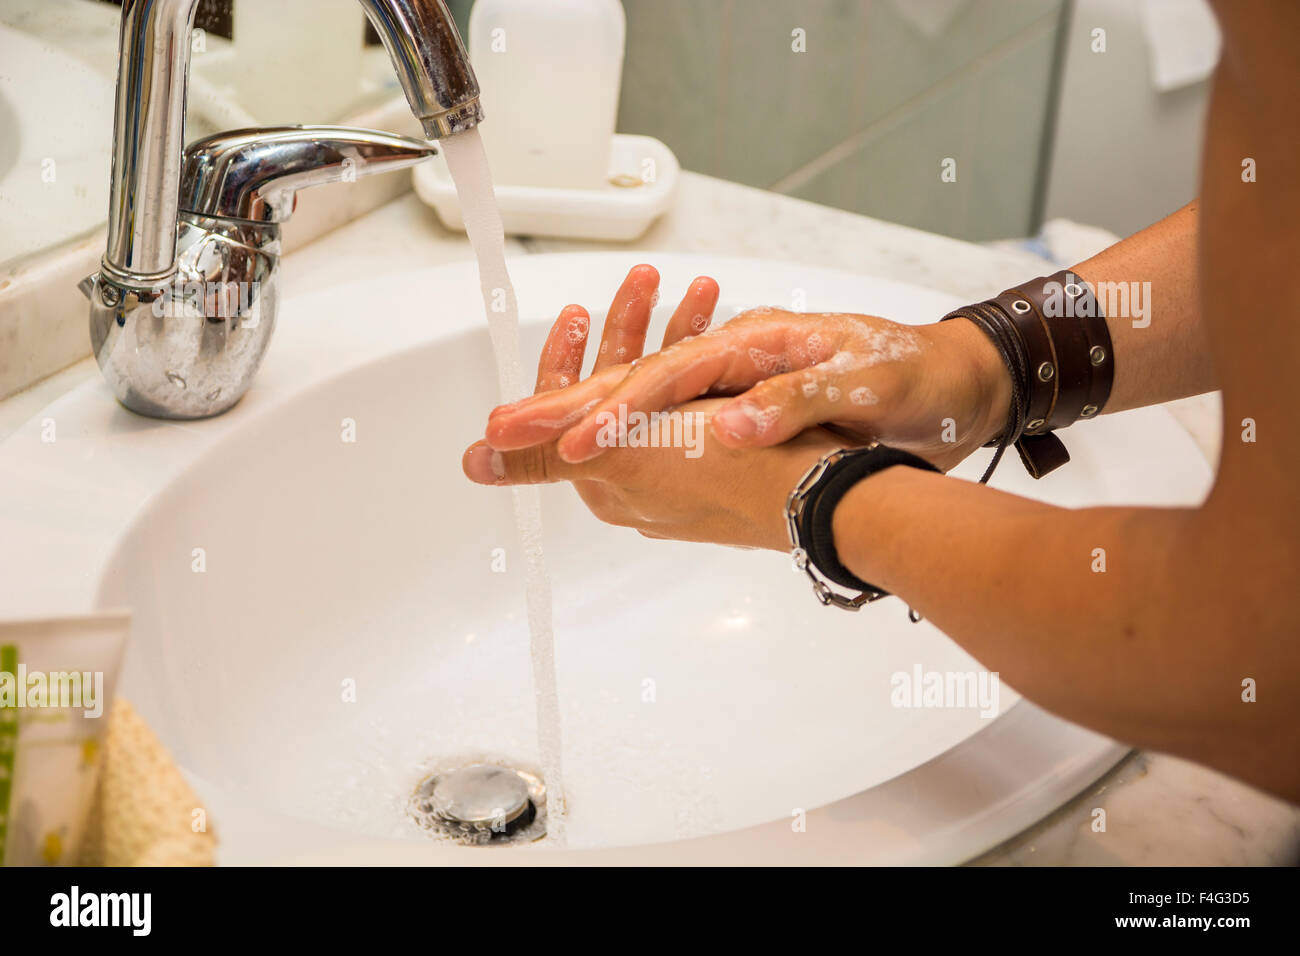 Young man's hands at bathroom washbasin using liquid soap for washing. - Stock Image